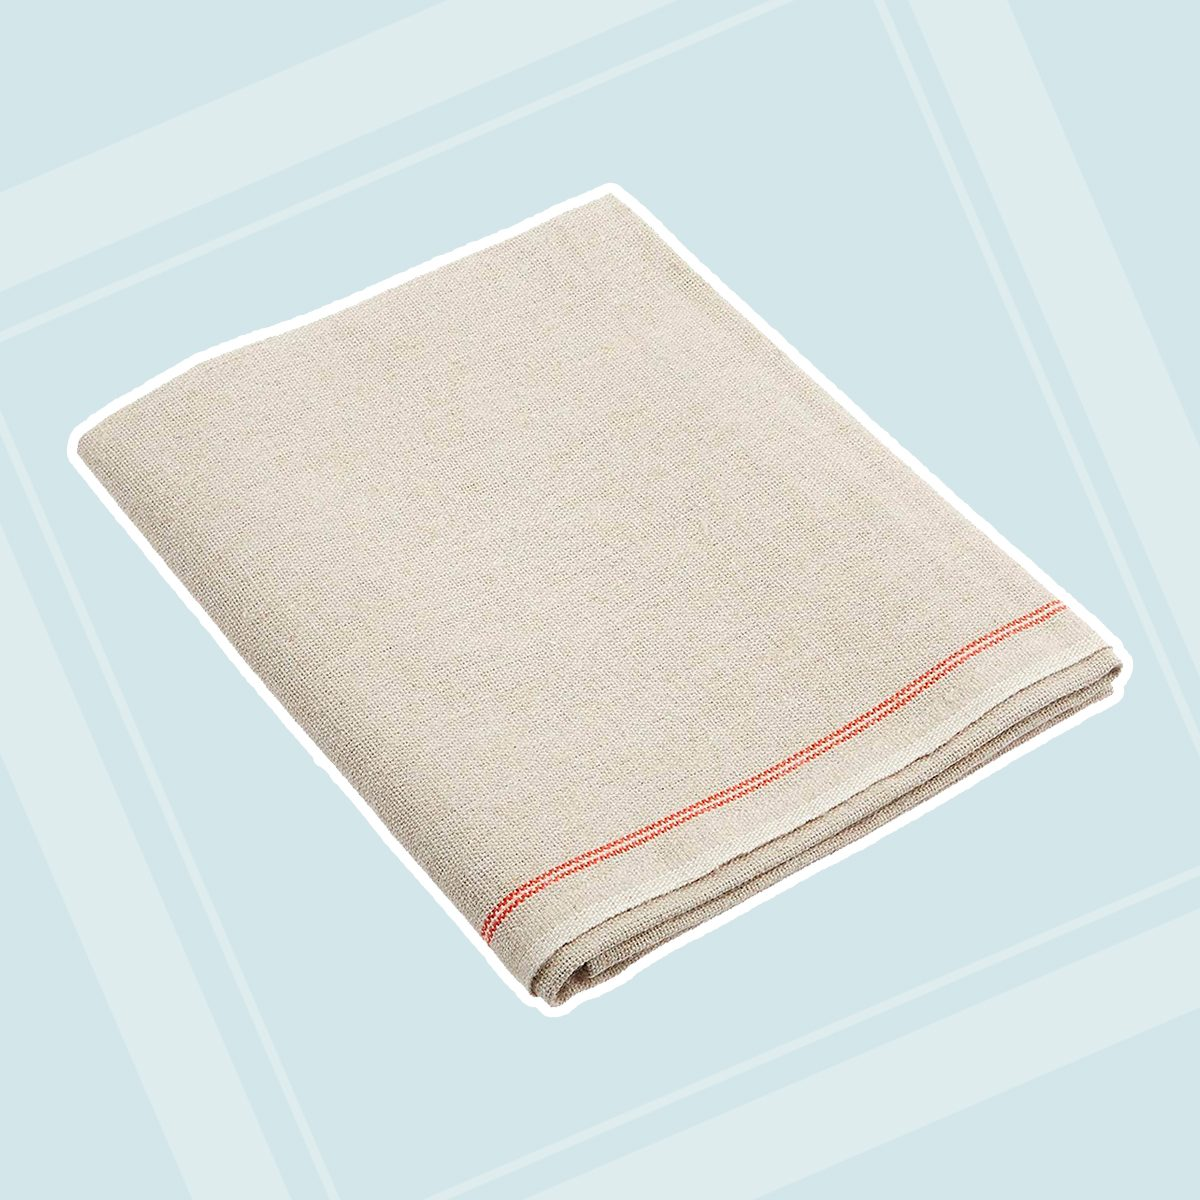 """Premium Professional Bakers Couche - 35""""x26"""", 100% Flax Linen Heavy Duty Proofing Cloth from Tissage Deren of France, with One Bonus Mure & Peyrot Fixed Blade Lame, by BrotformDotCom"""